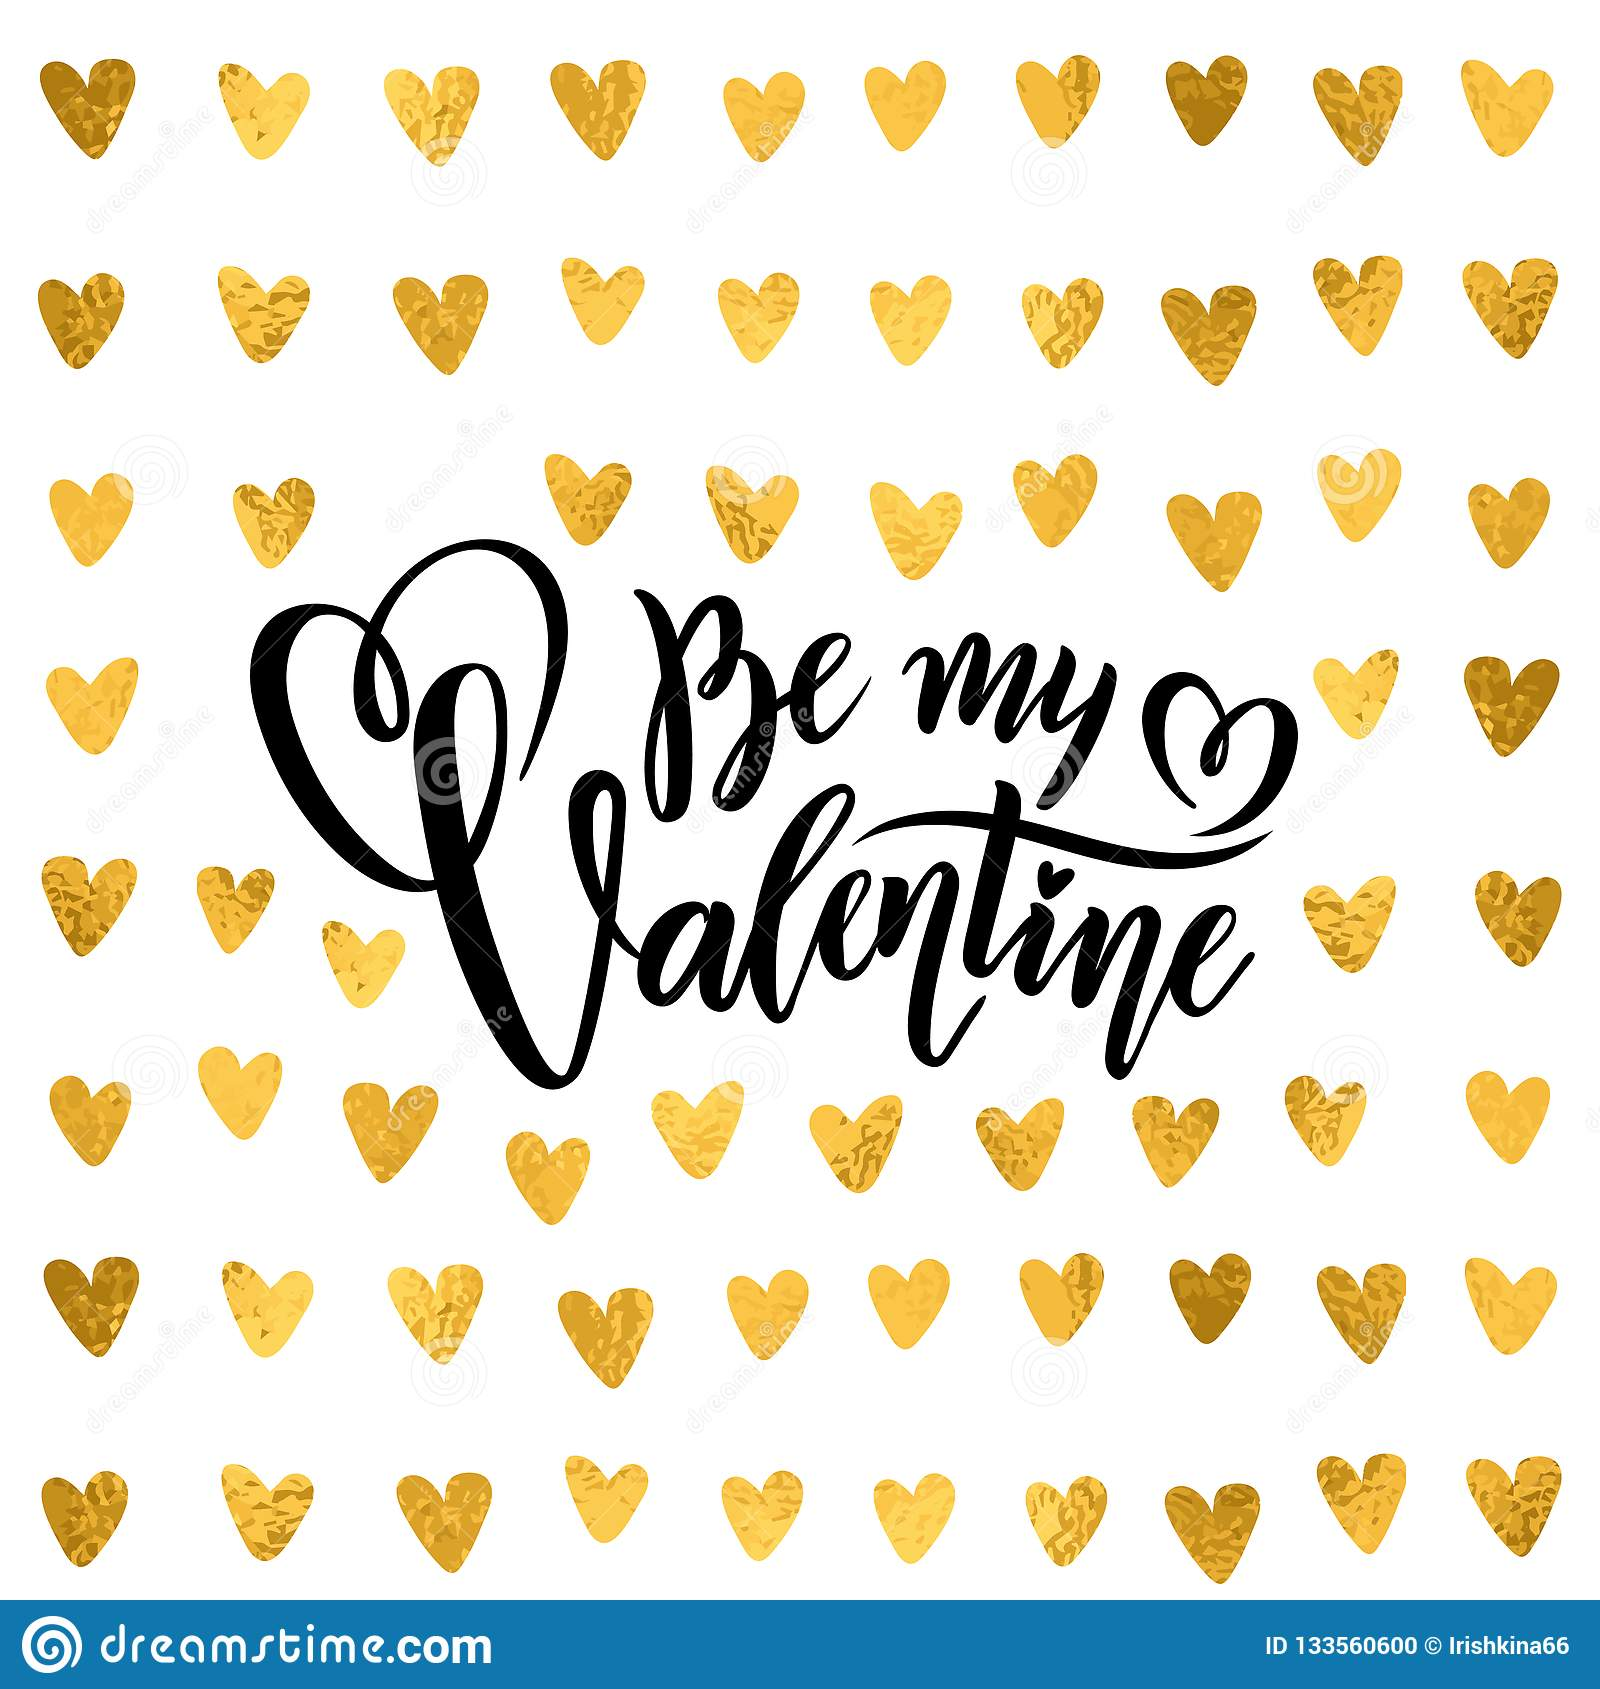 Vector golden foil handwritten lettering quote Be my Valentine Calligraphy drawn text Valentines Day hearts gold pattern